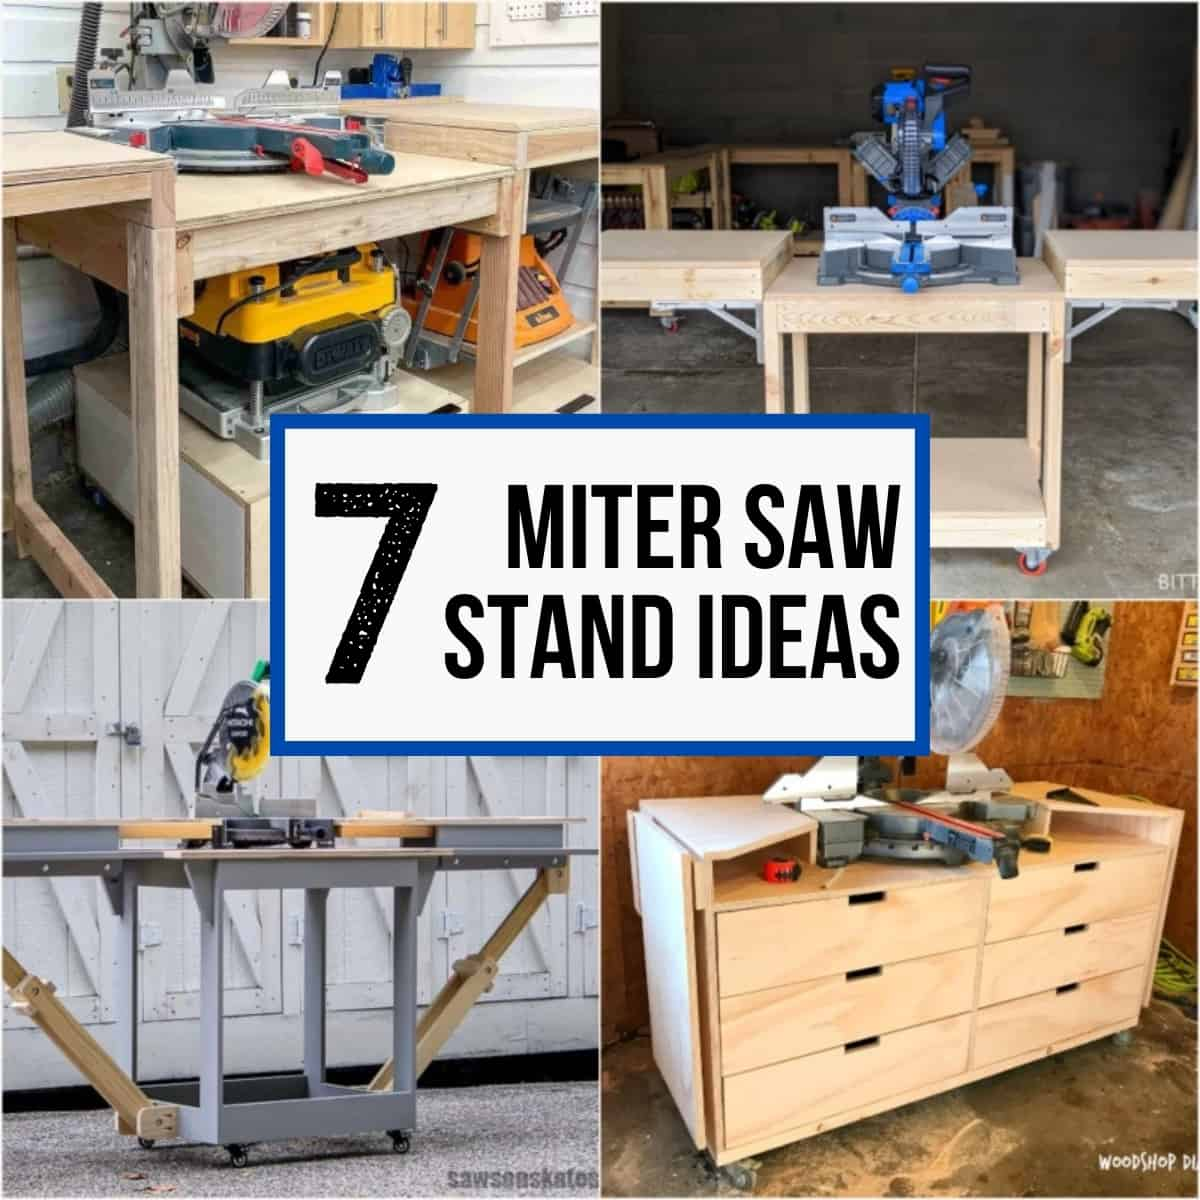 7 miter saw stand ideas collage